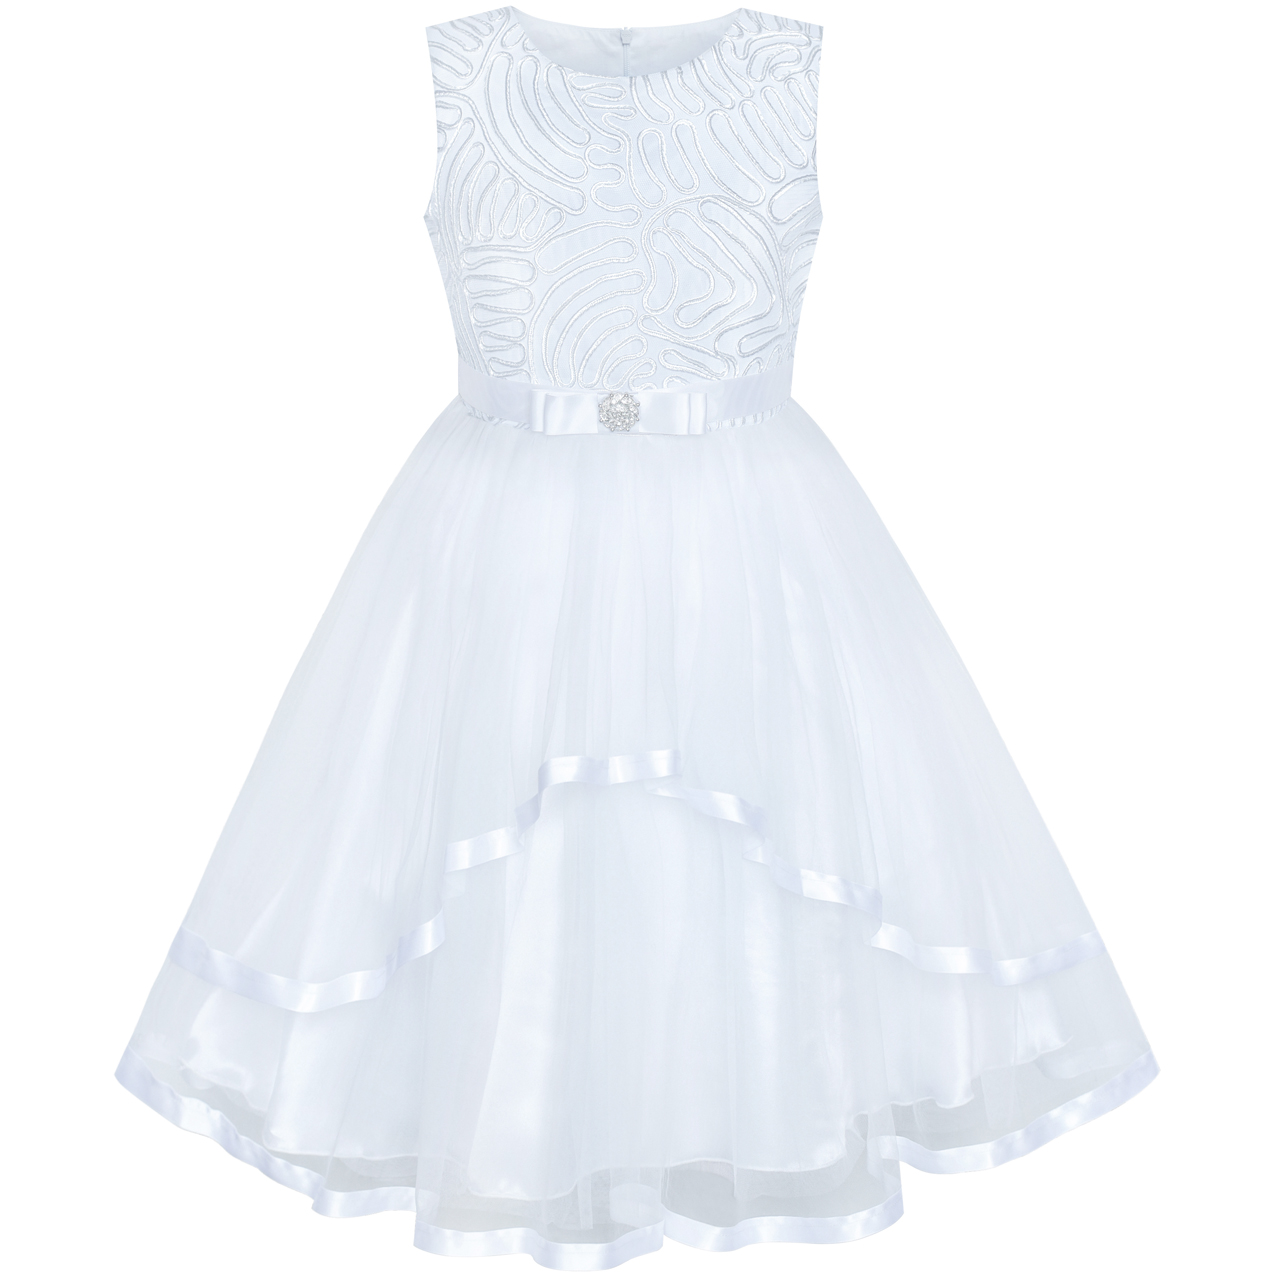 Flower Girl Dress White Wedding Party Dress Bridesmaid Summer Princess Dresses for Girls Clothes 4 12 Pageant Sundress